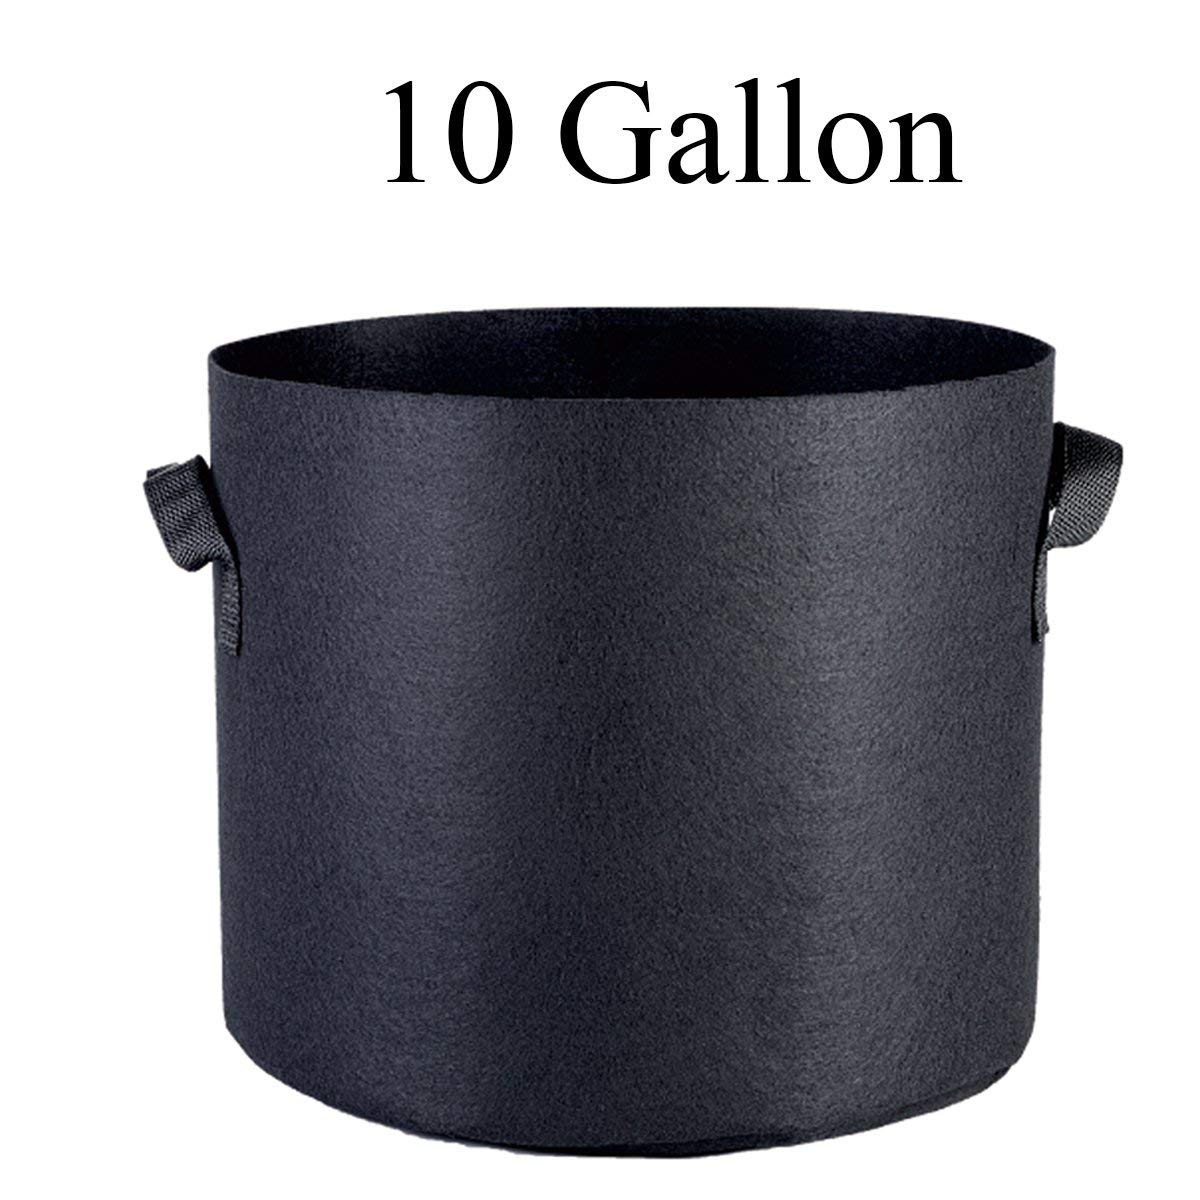 PrimeGarden 3 /6 /12 /24-Pack 1 2 3 5 7 10 15 20 25 30 45 65 100 Gallon Grow Bags Heavy Duty Plant Aeration Fabric Nursery Pots Container for Gardening Plants Flowers & Vegetables (12-Pack, 10 Gallon)